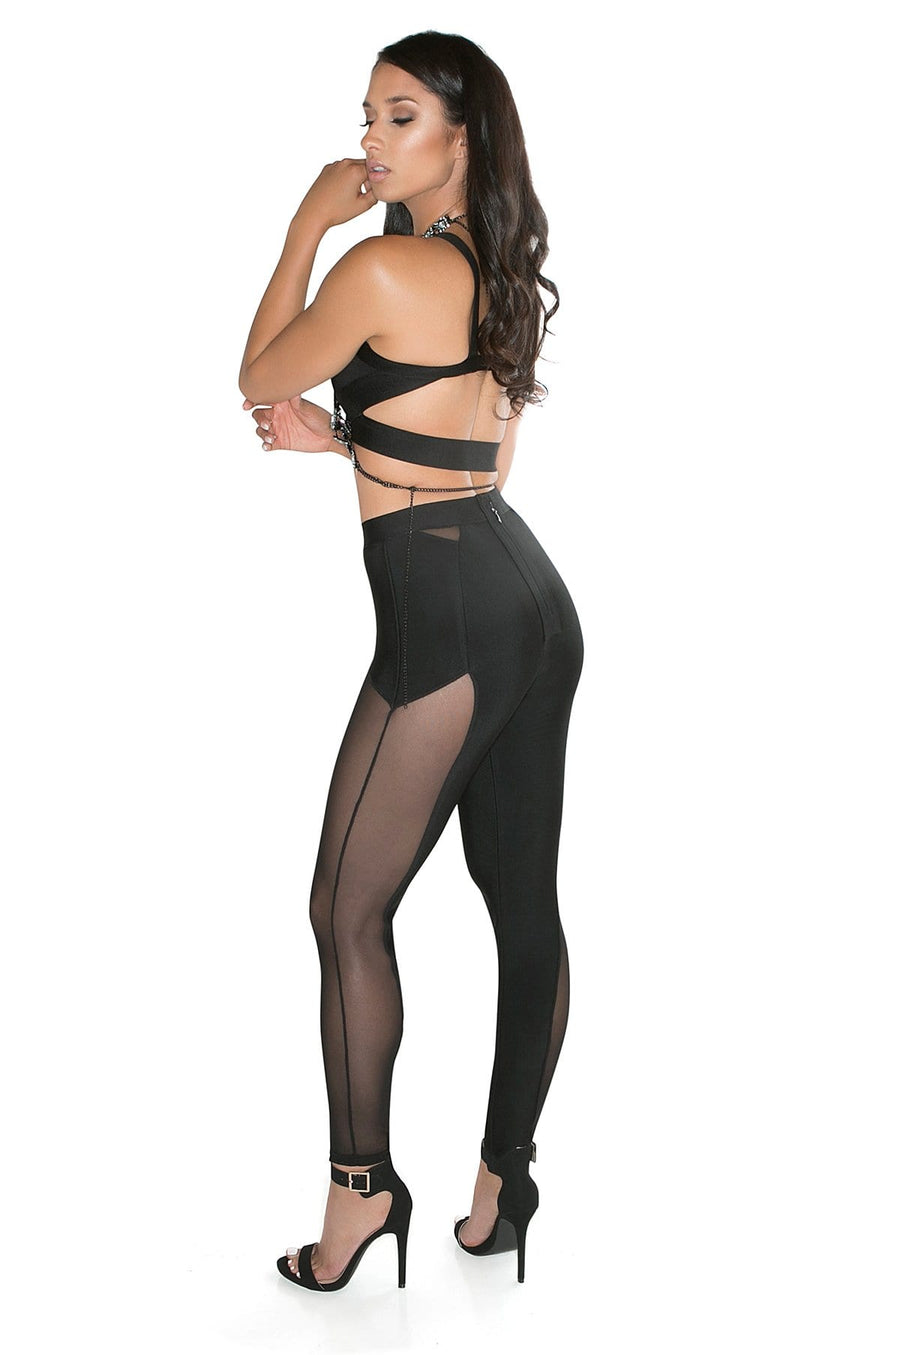 'Invidia' Bandage and Mesh Pants